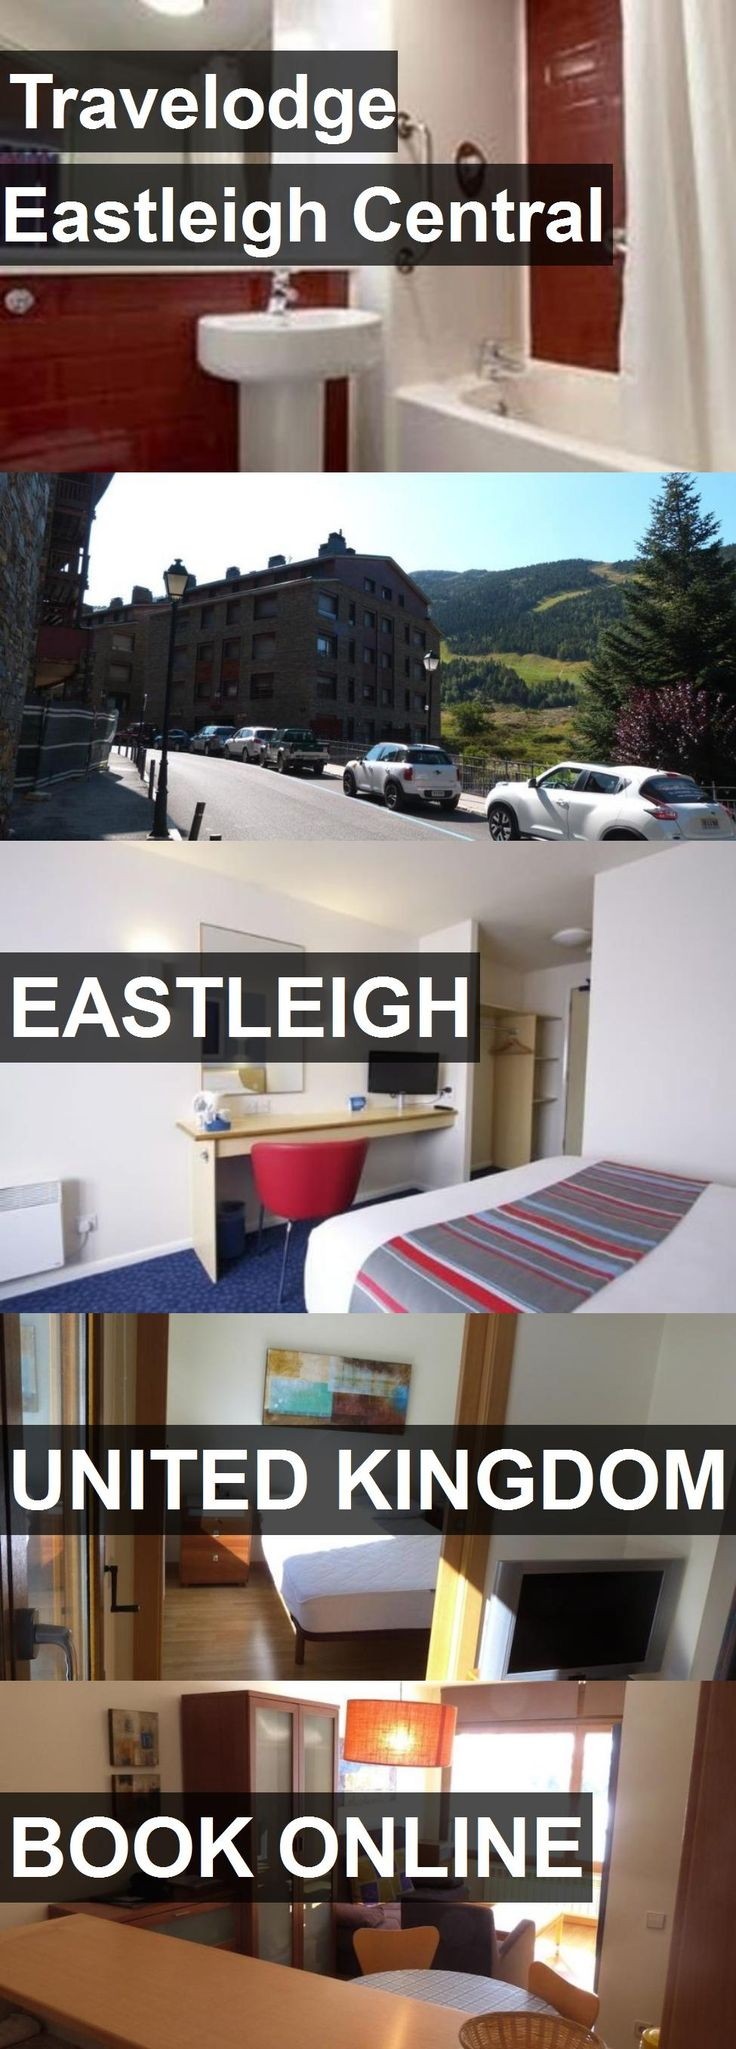 Hotel Travelodge Eastleigh Central in Eastleigh, United Kingdom. For more information, photos, reviews and best prices please follow the link. #UnitedKingdom #Eastleigh #hotel #travel #vacation